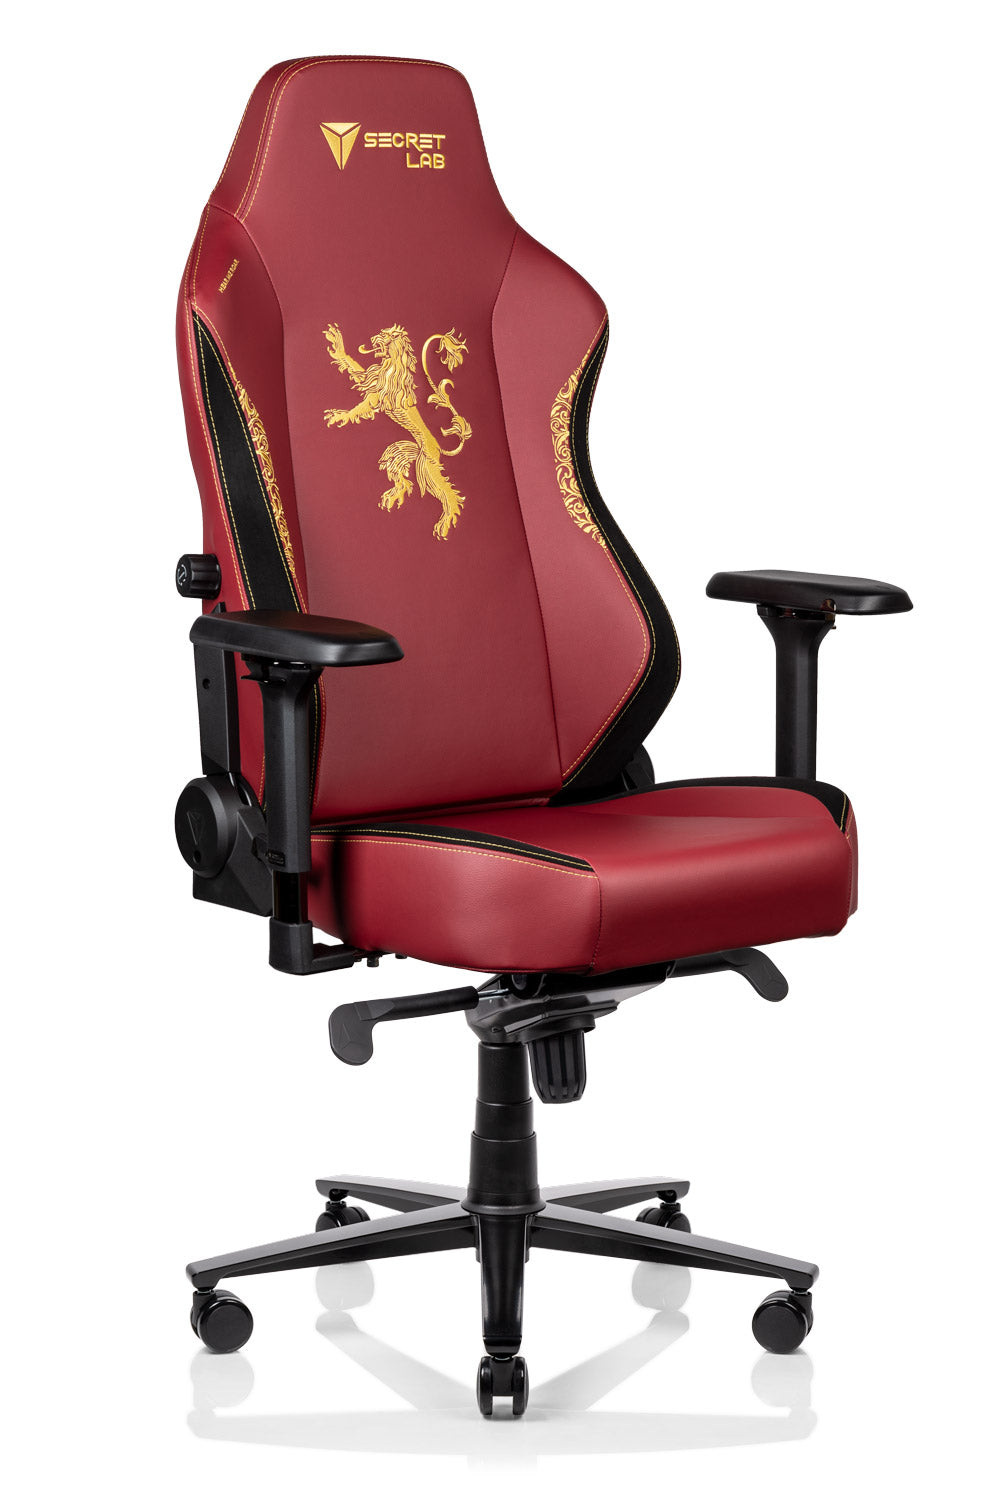 Surprising Best Gaming Chairs On Discount Secretlab Us Ibusinesslaw Wood Chair Design Ideas Ibusinesslaworg